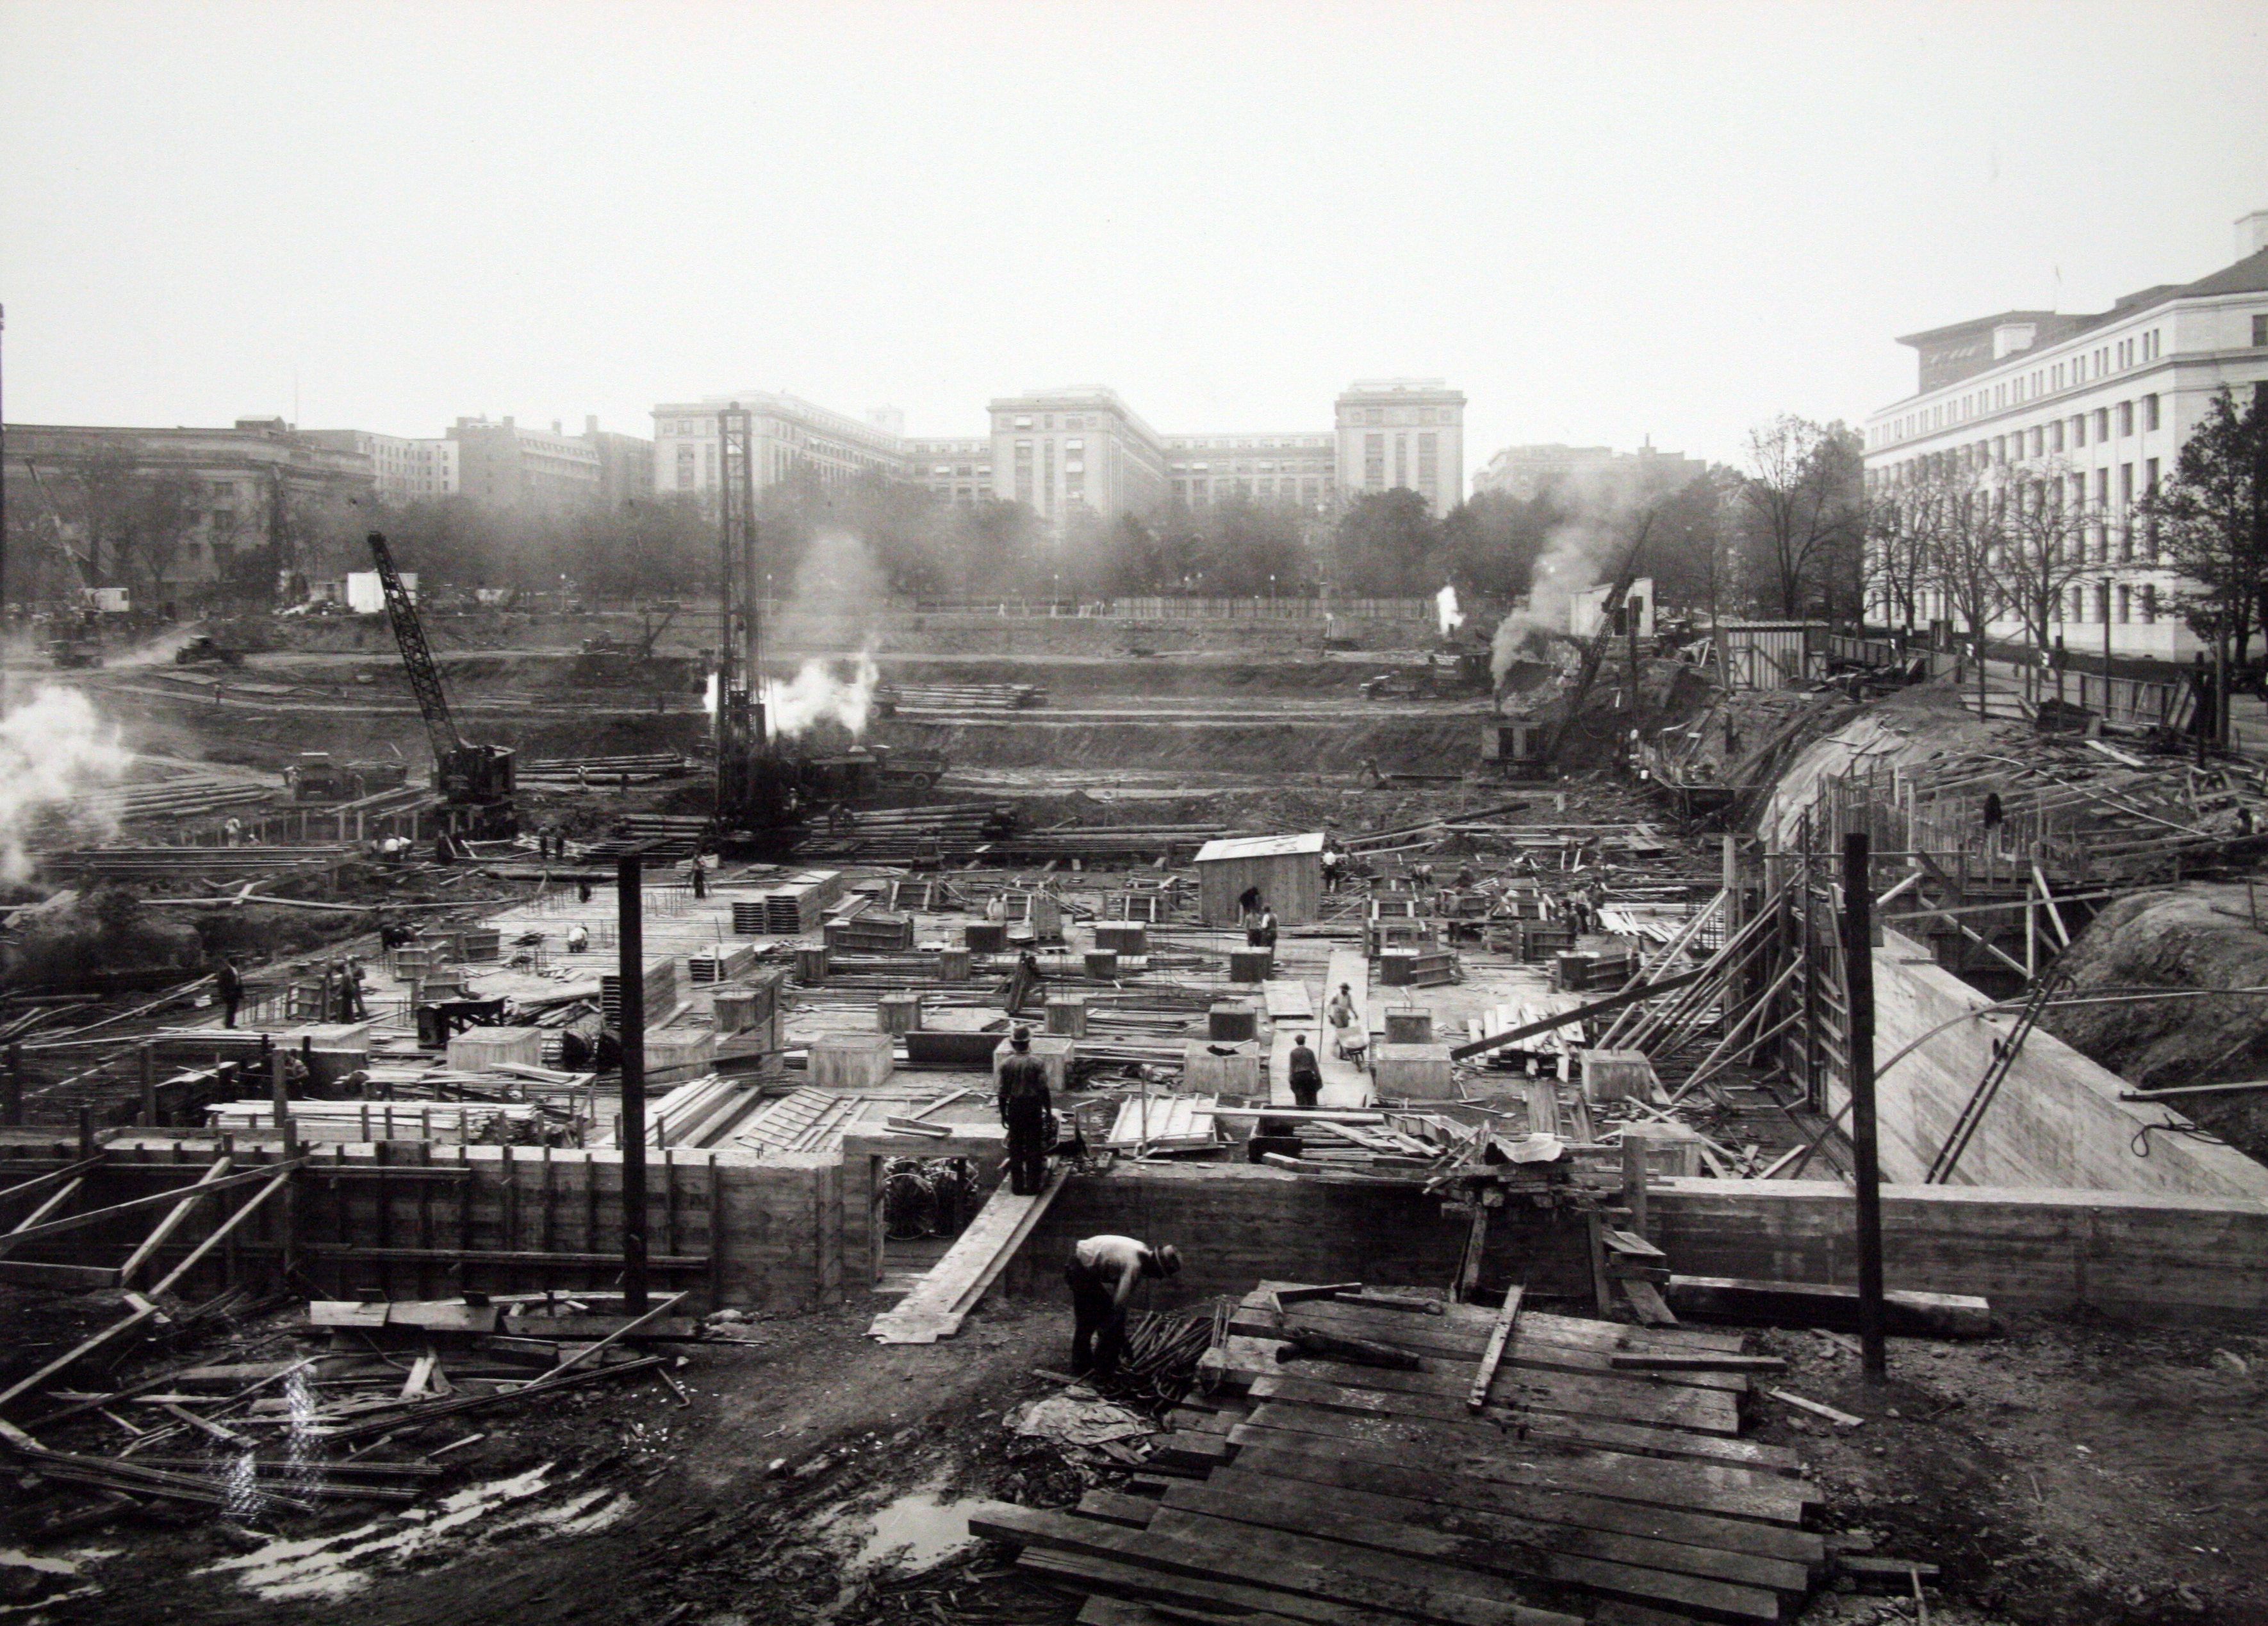 Construction of the building foundation, 1935.